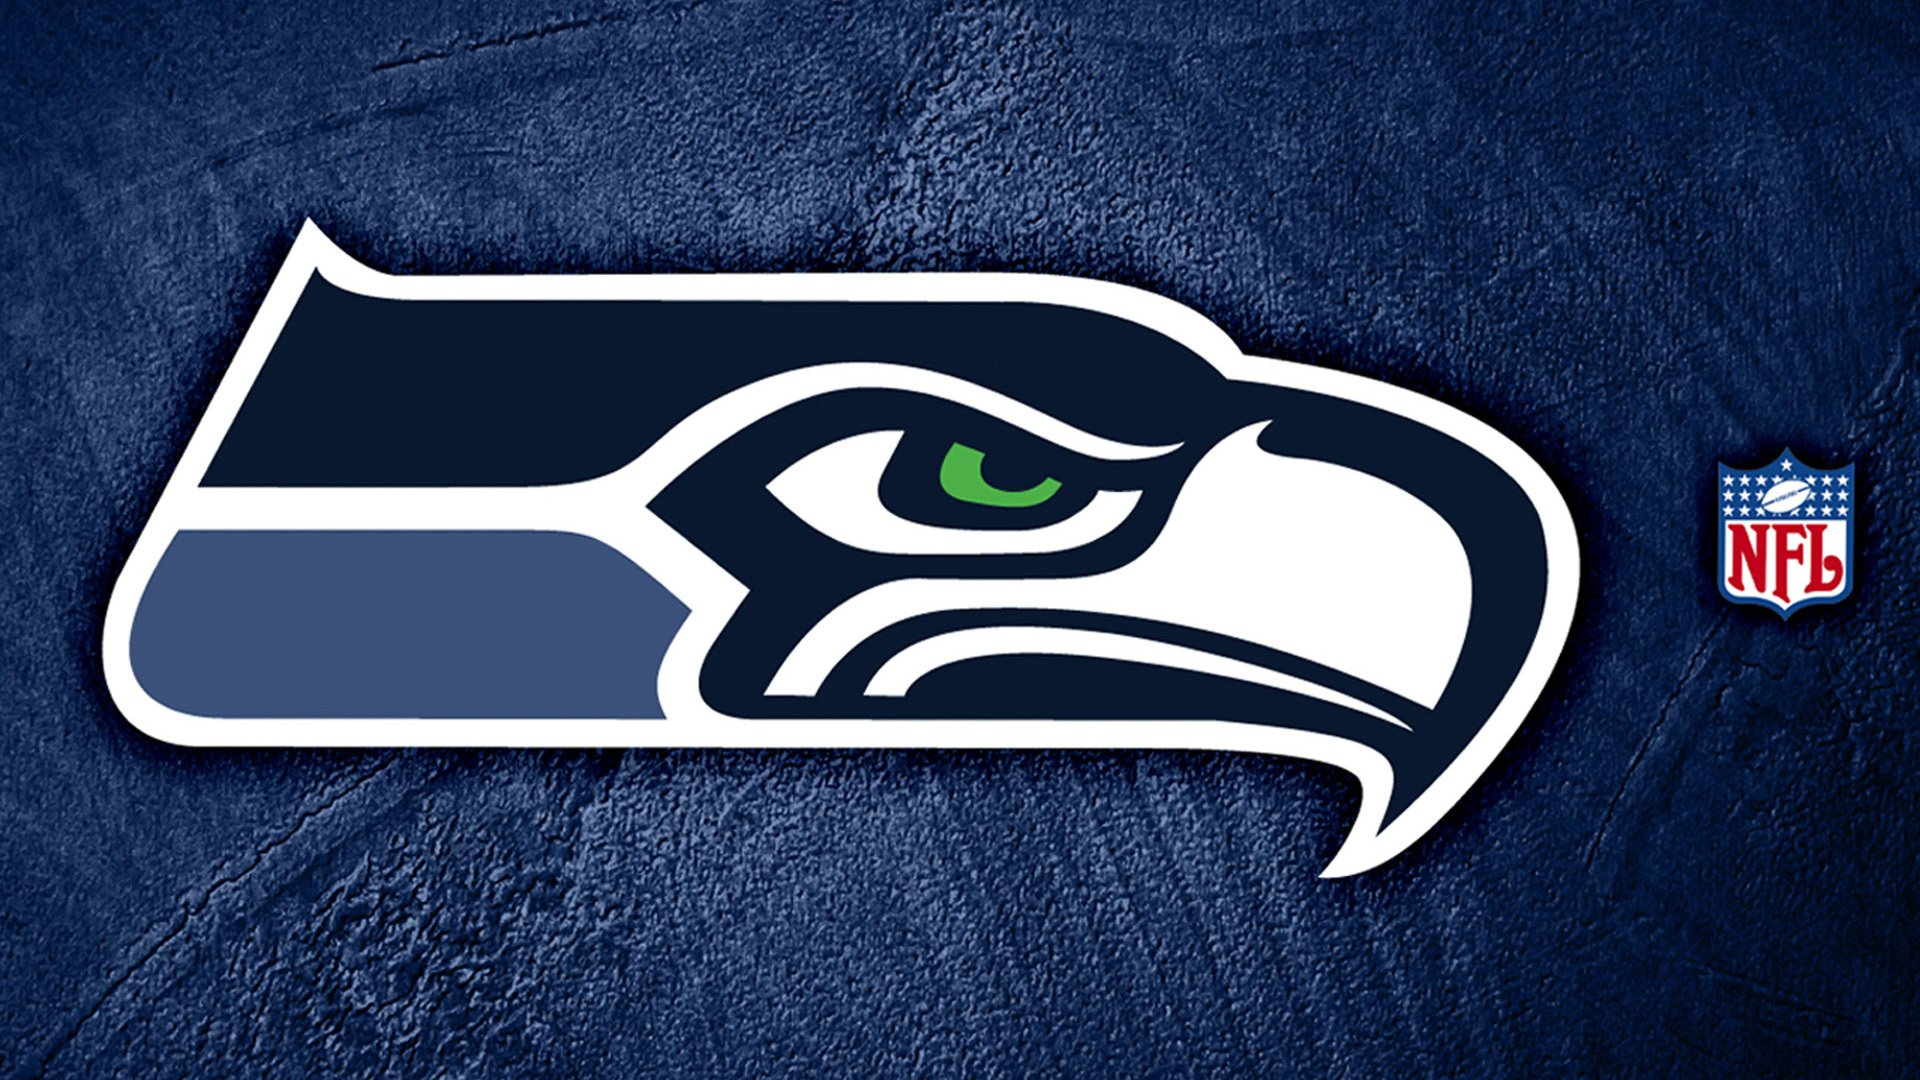 306 Seattle Seahawks Hd Wallpapers Background Images Wallpaper Abyss Page 2